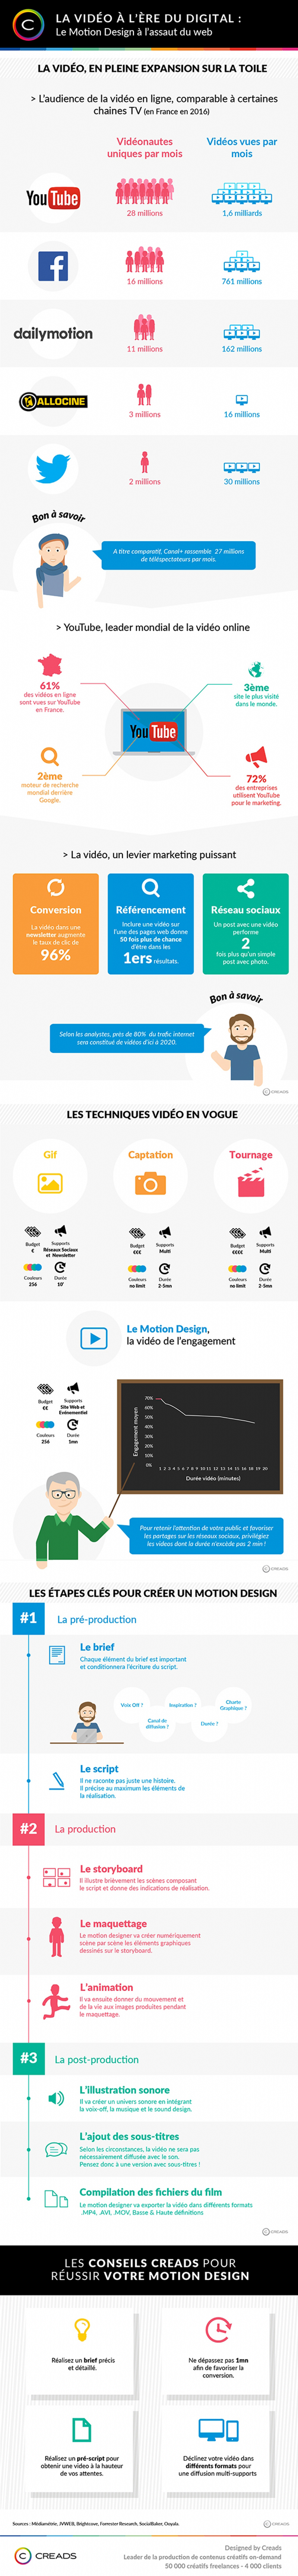 infographie motion design